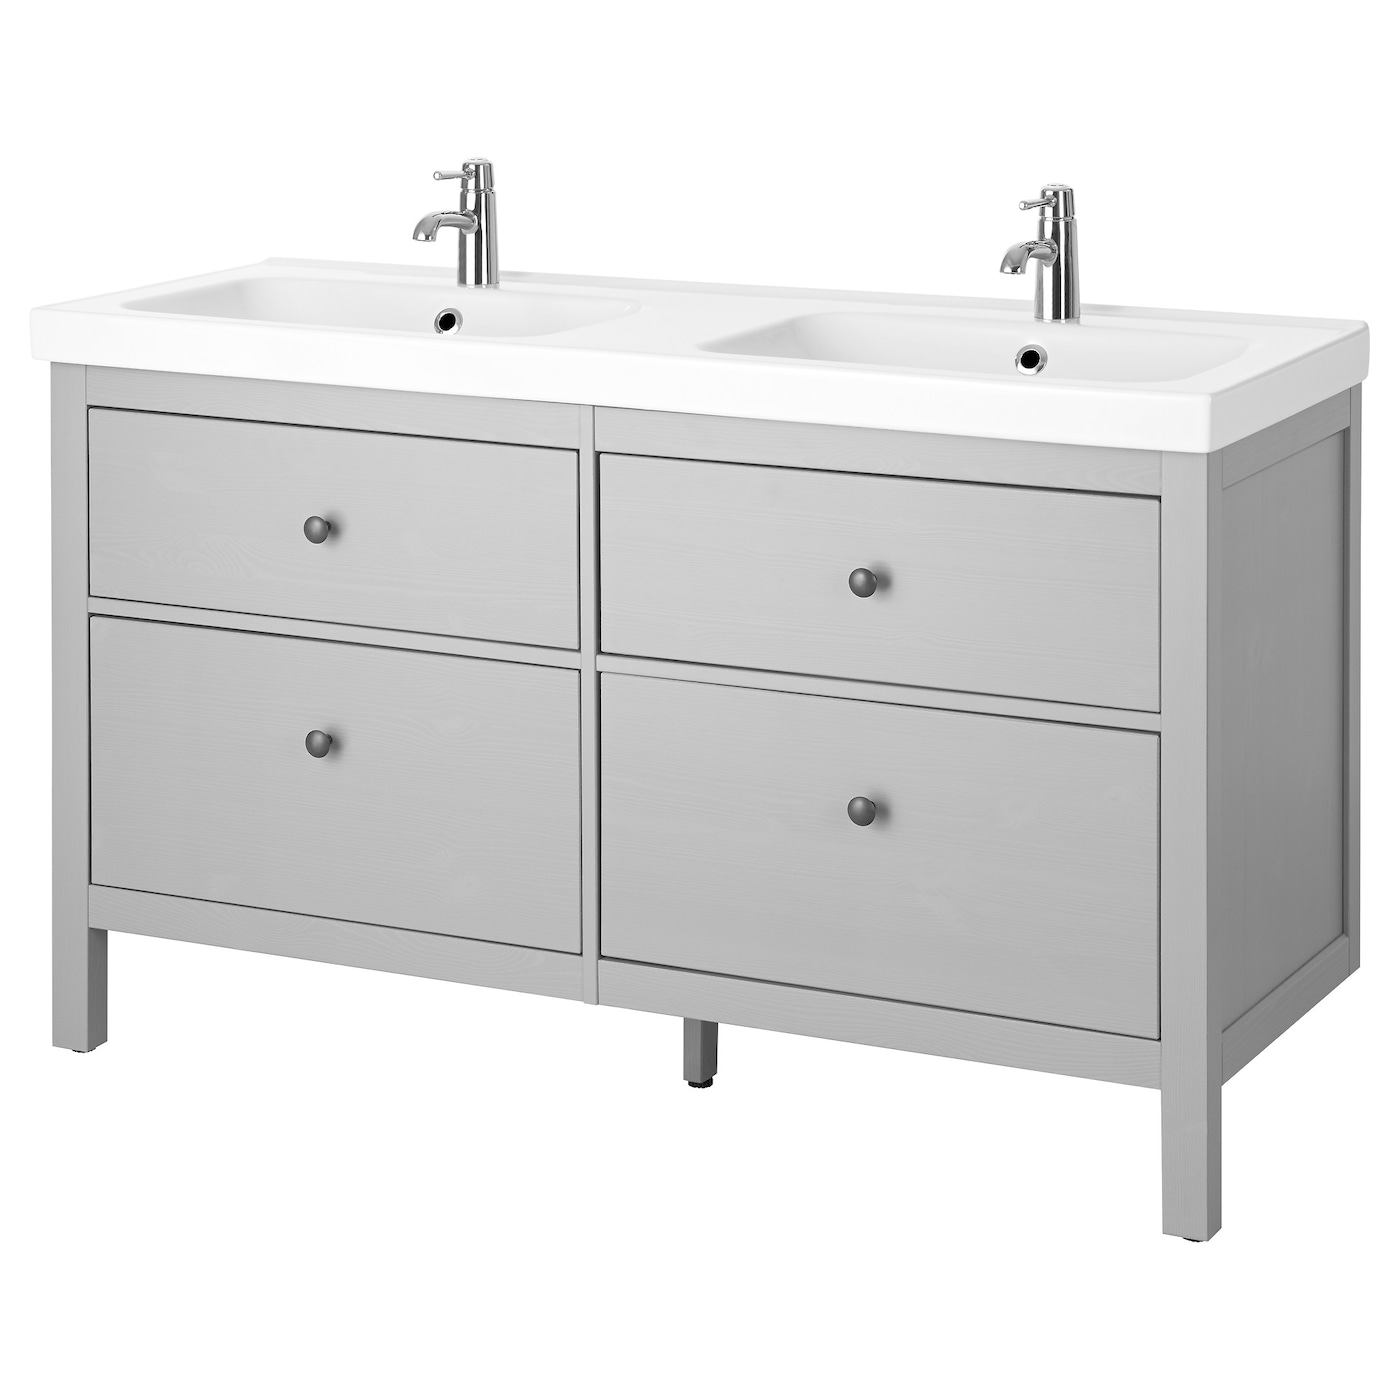 HEMNES / ODENSVIK Sink Cabinet With 4 Drawers, Gray, 56 1/4x19 1/4x35